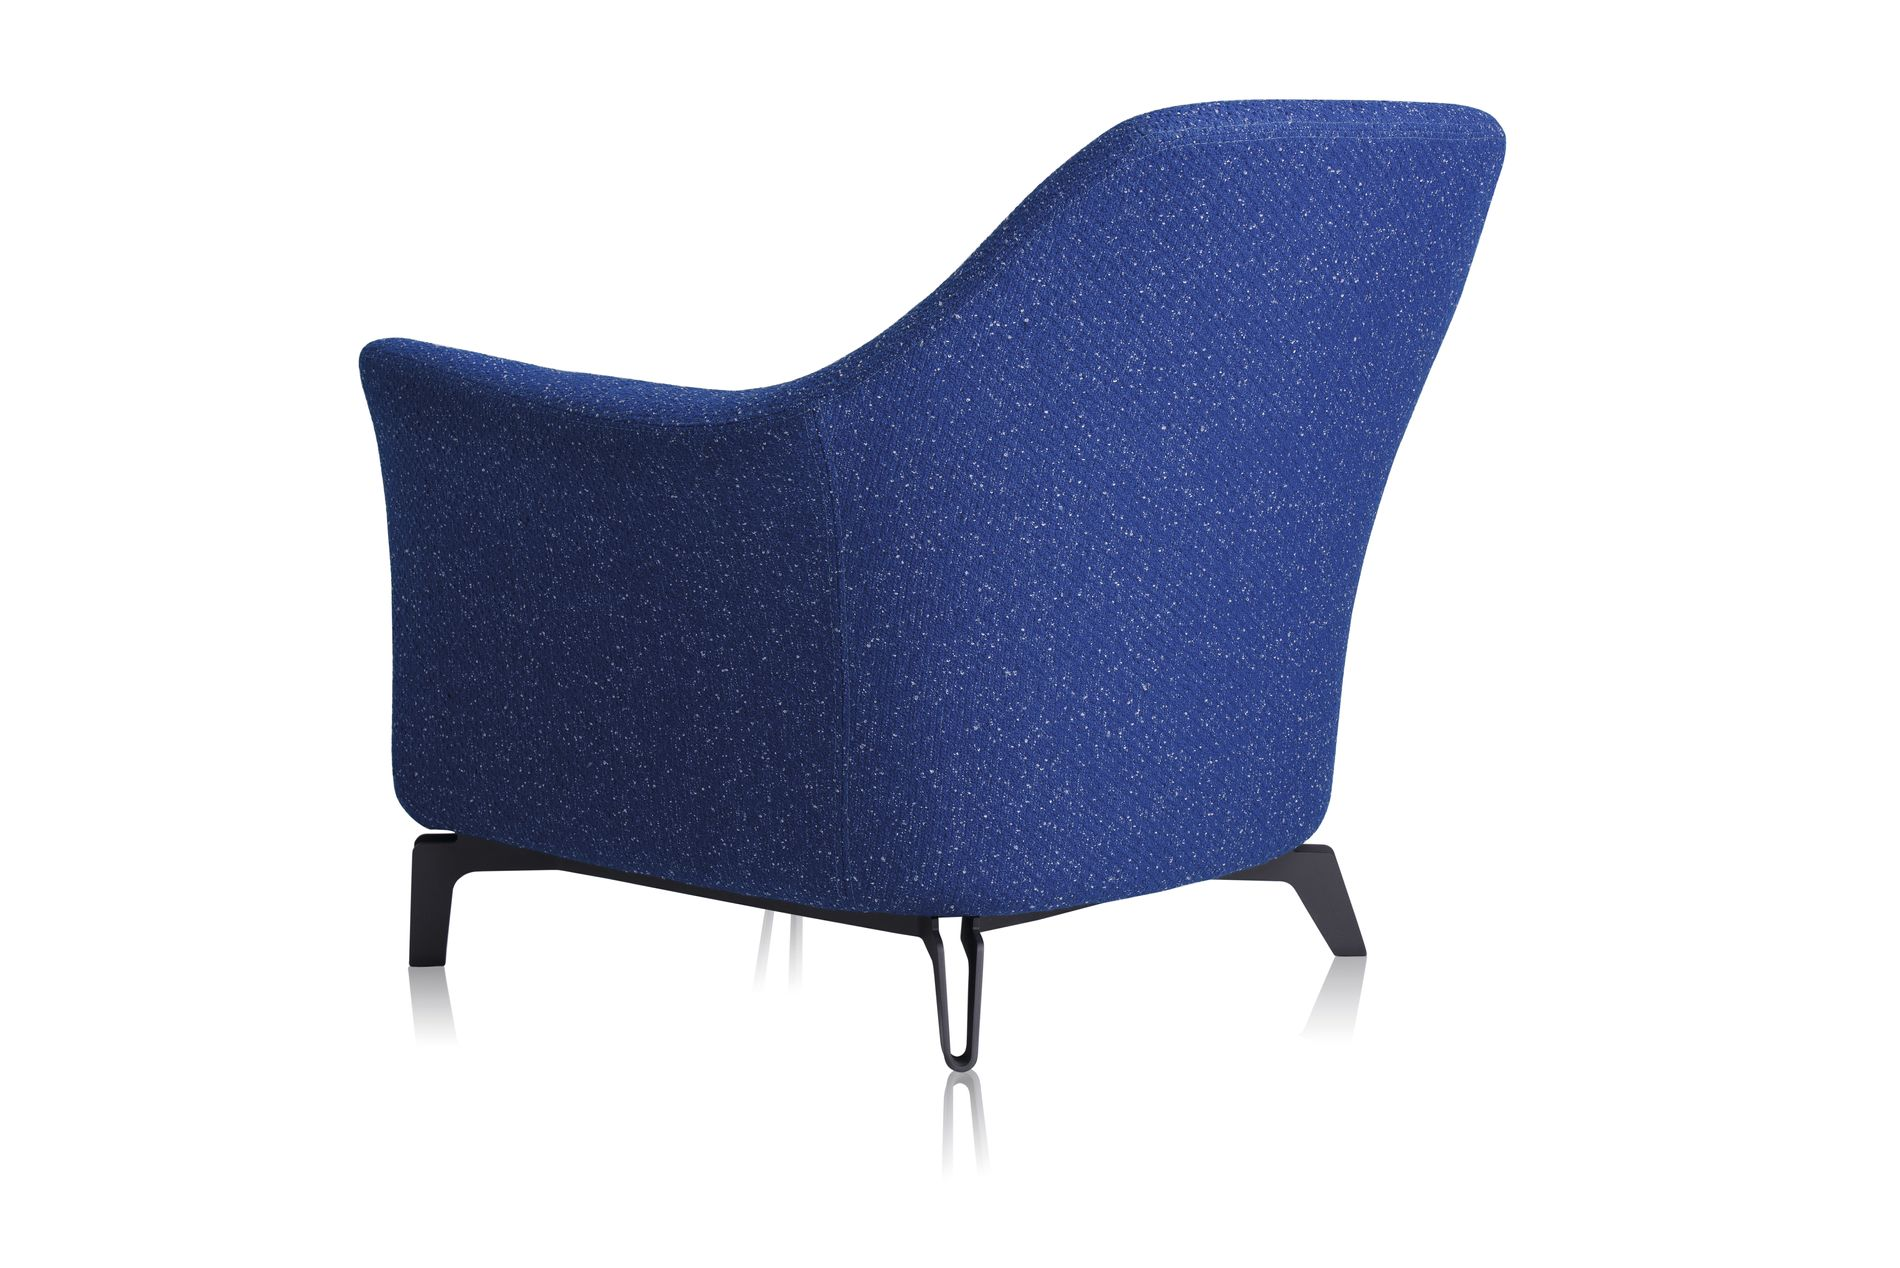 Dora armchair by Jader Almeida - Kelly Christian Designs